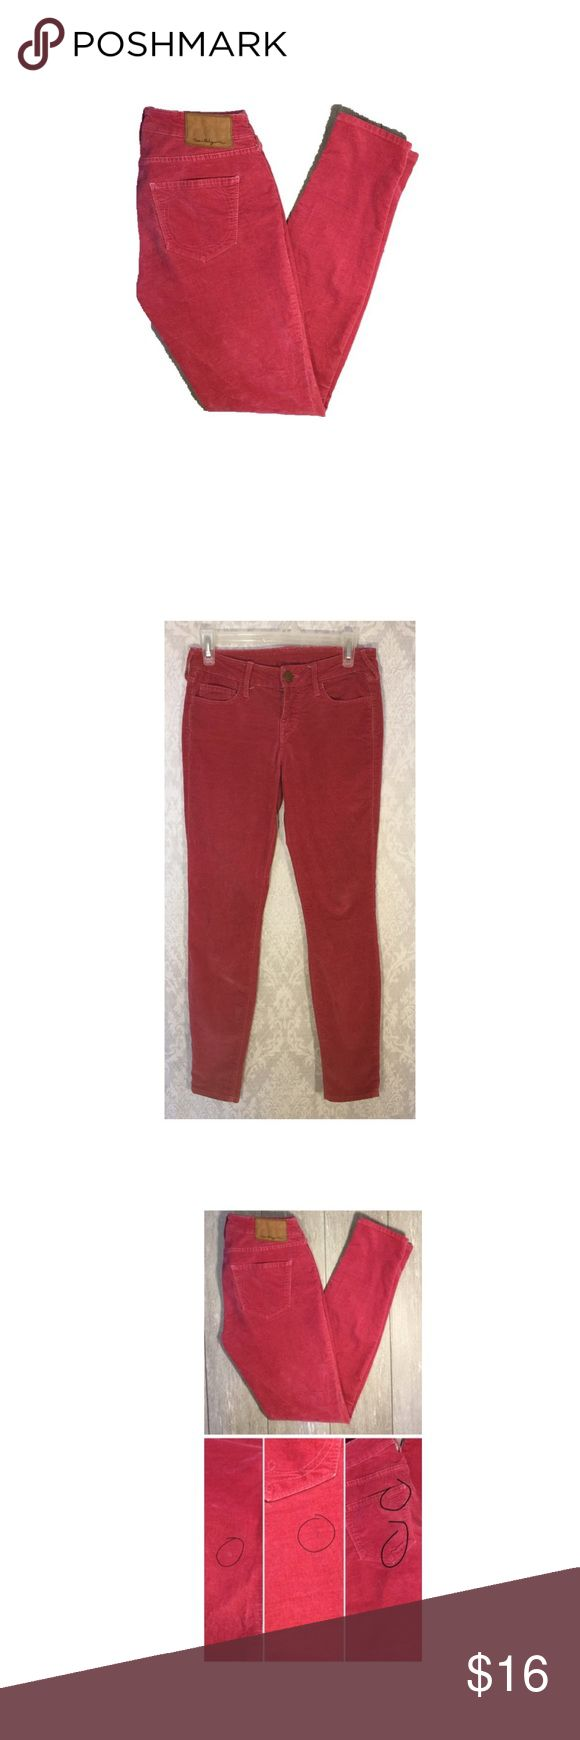 """True Religion in Red True Religion in soft red. They feel like velvet. Size 27, Inseam 29"""". These are in used condition with some flaws shown in the pic. But they still have some wear to them. Offers Welcome True Religion Jeans"""